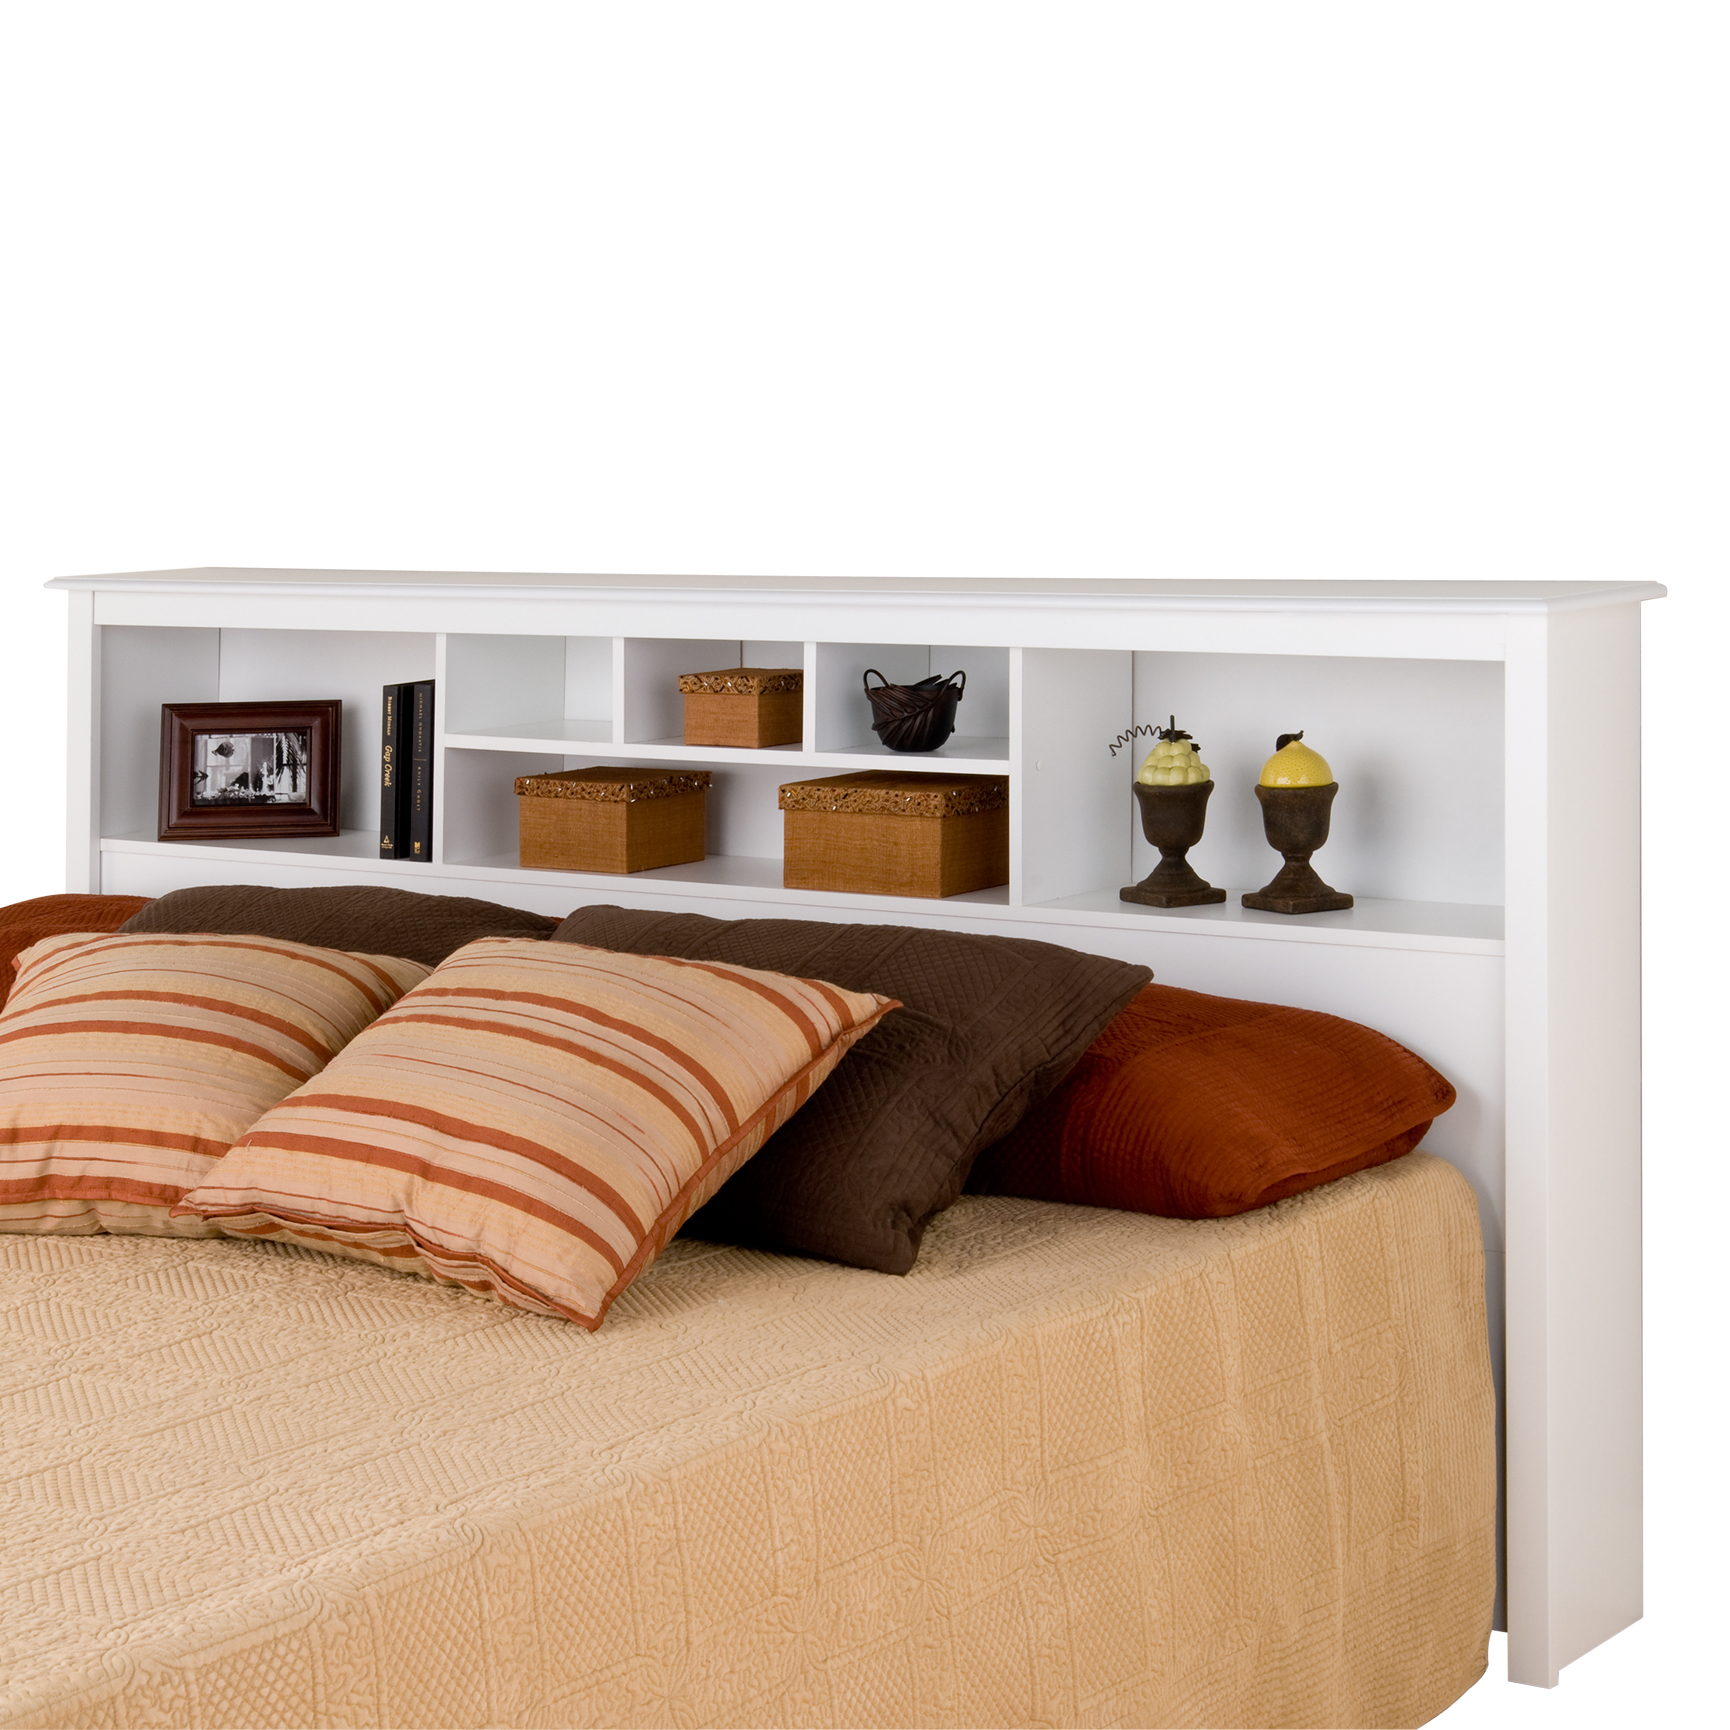 Monterey White King Bookcase Headboard, WHITE